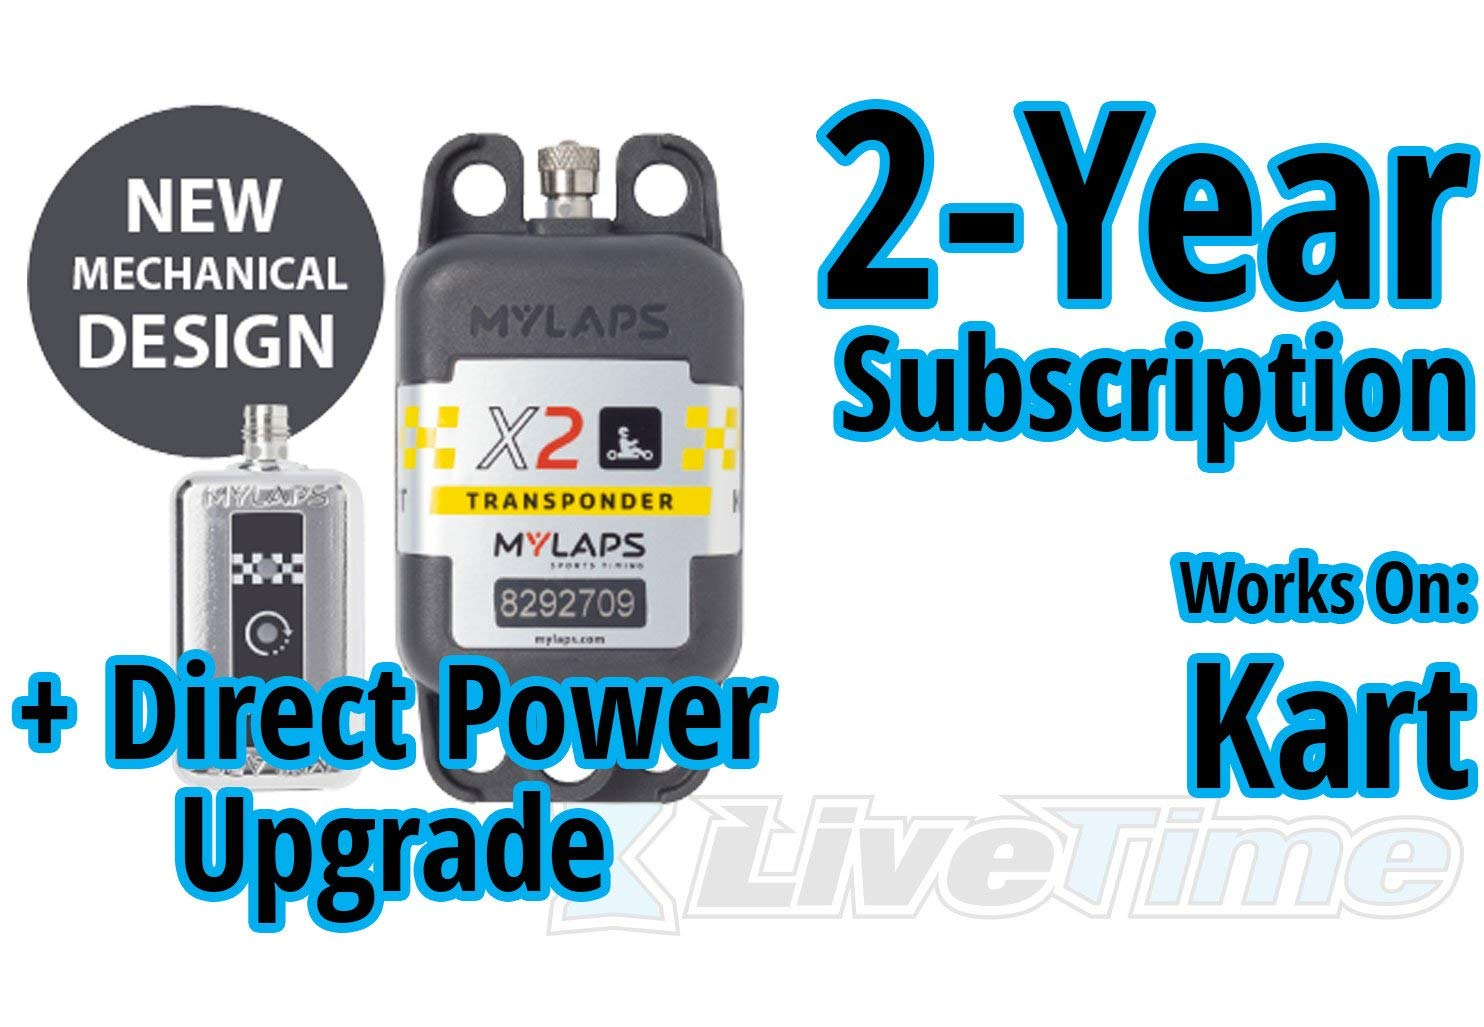 MyLaps X2 Transponder, Direct Power, for Karting, includes 2-Year Subscription